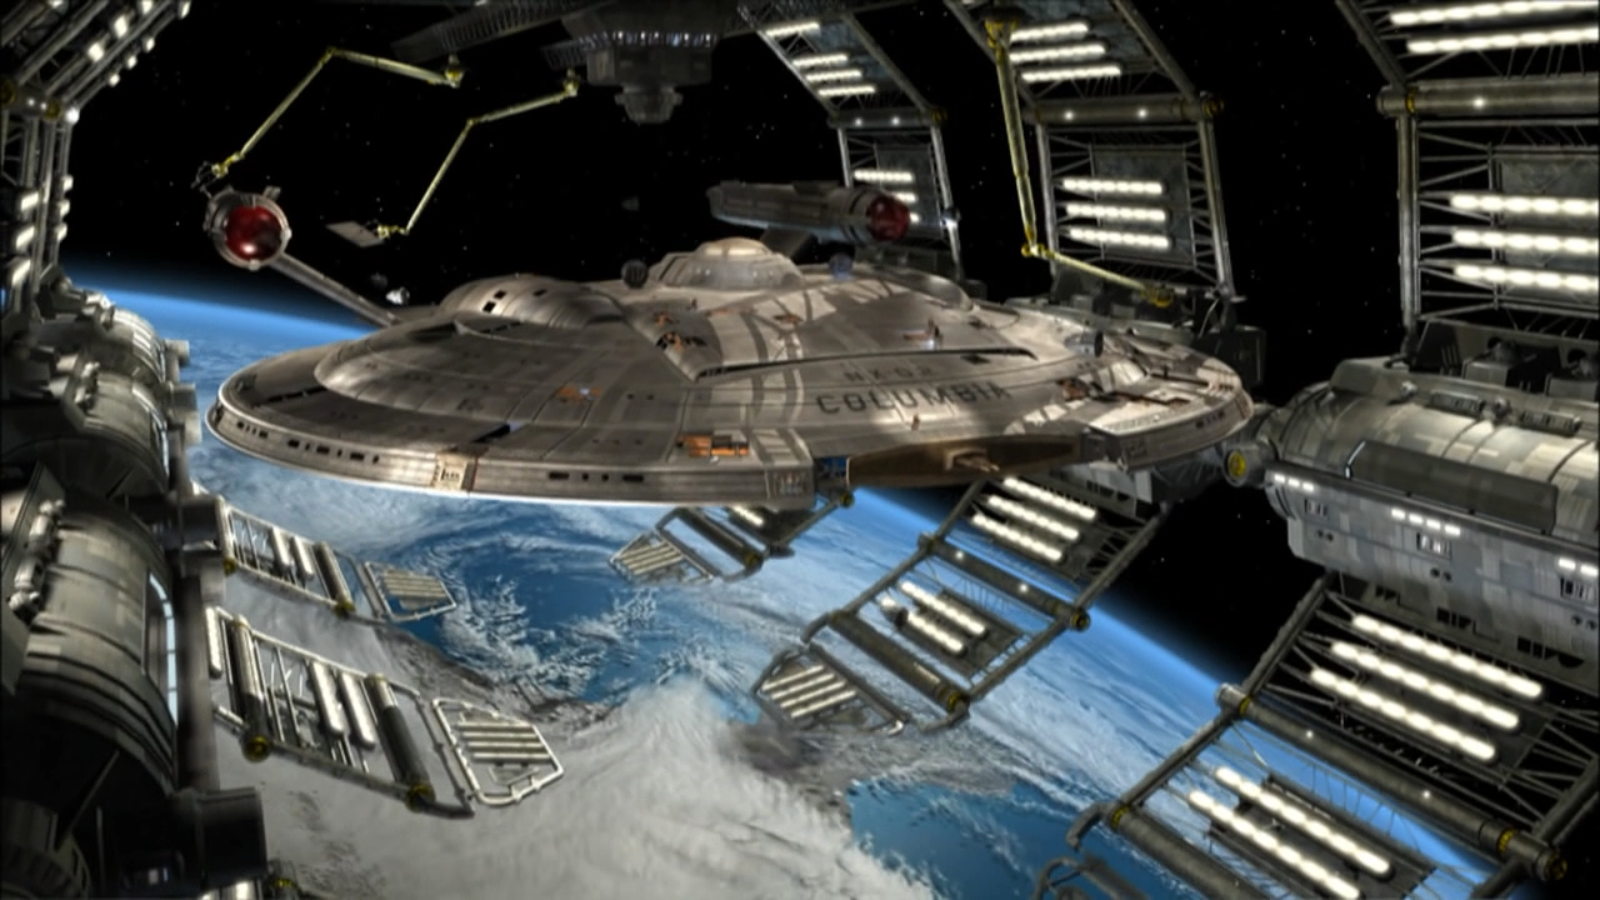 NX-02, Columbia, might've been an indicator of what a refitted Season 5 Enterprise would look like.